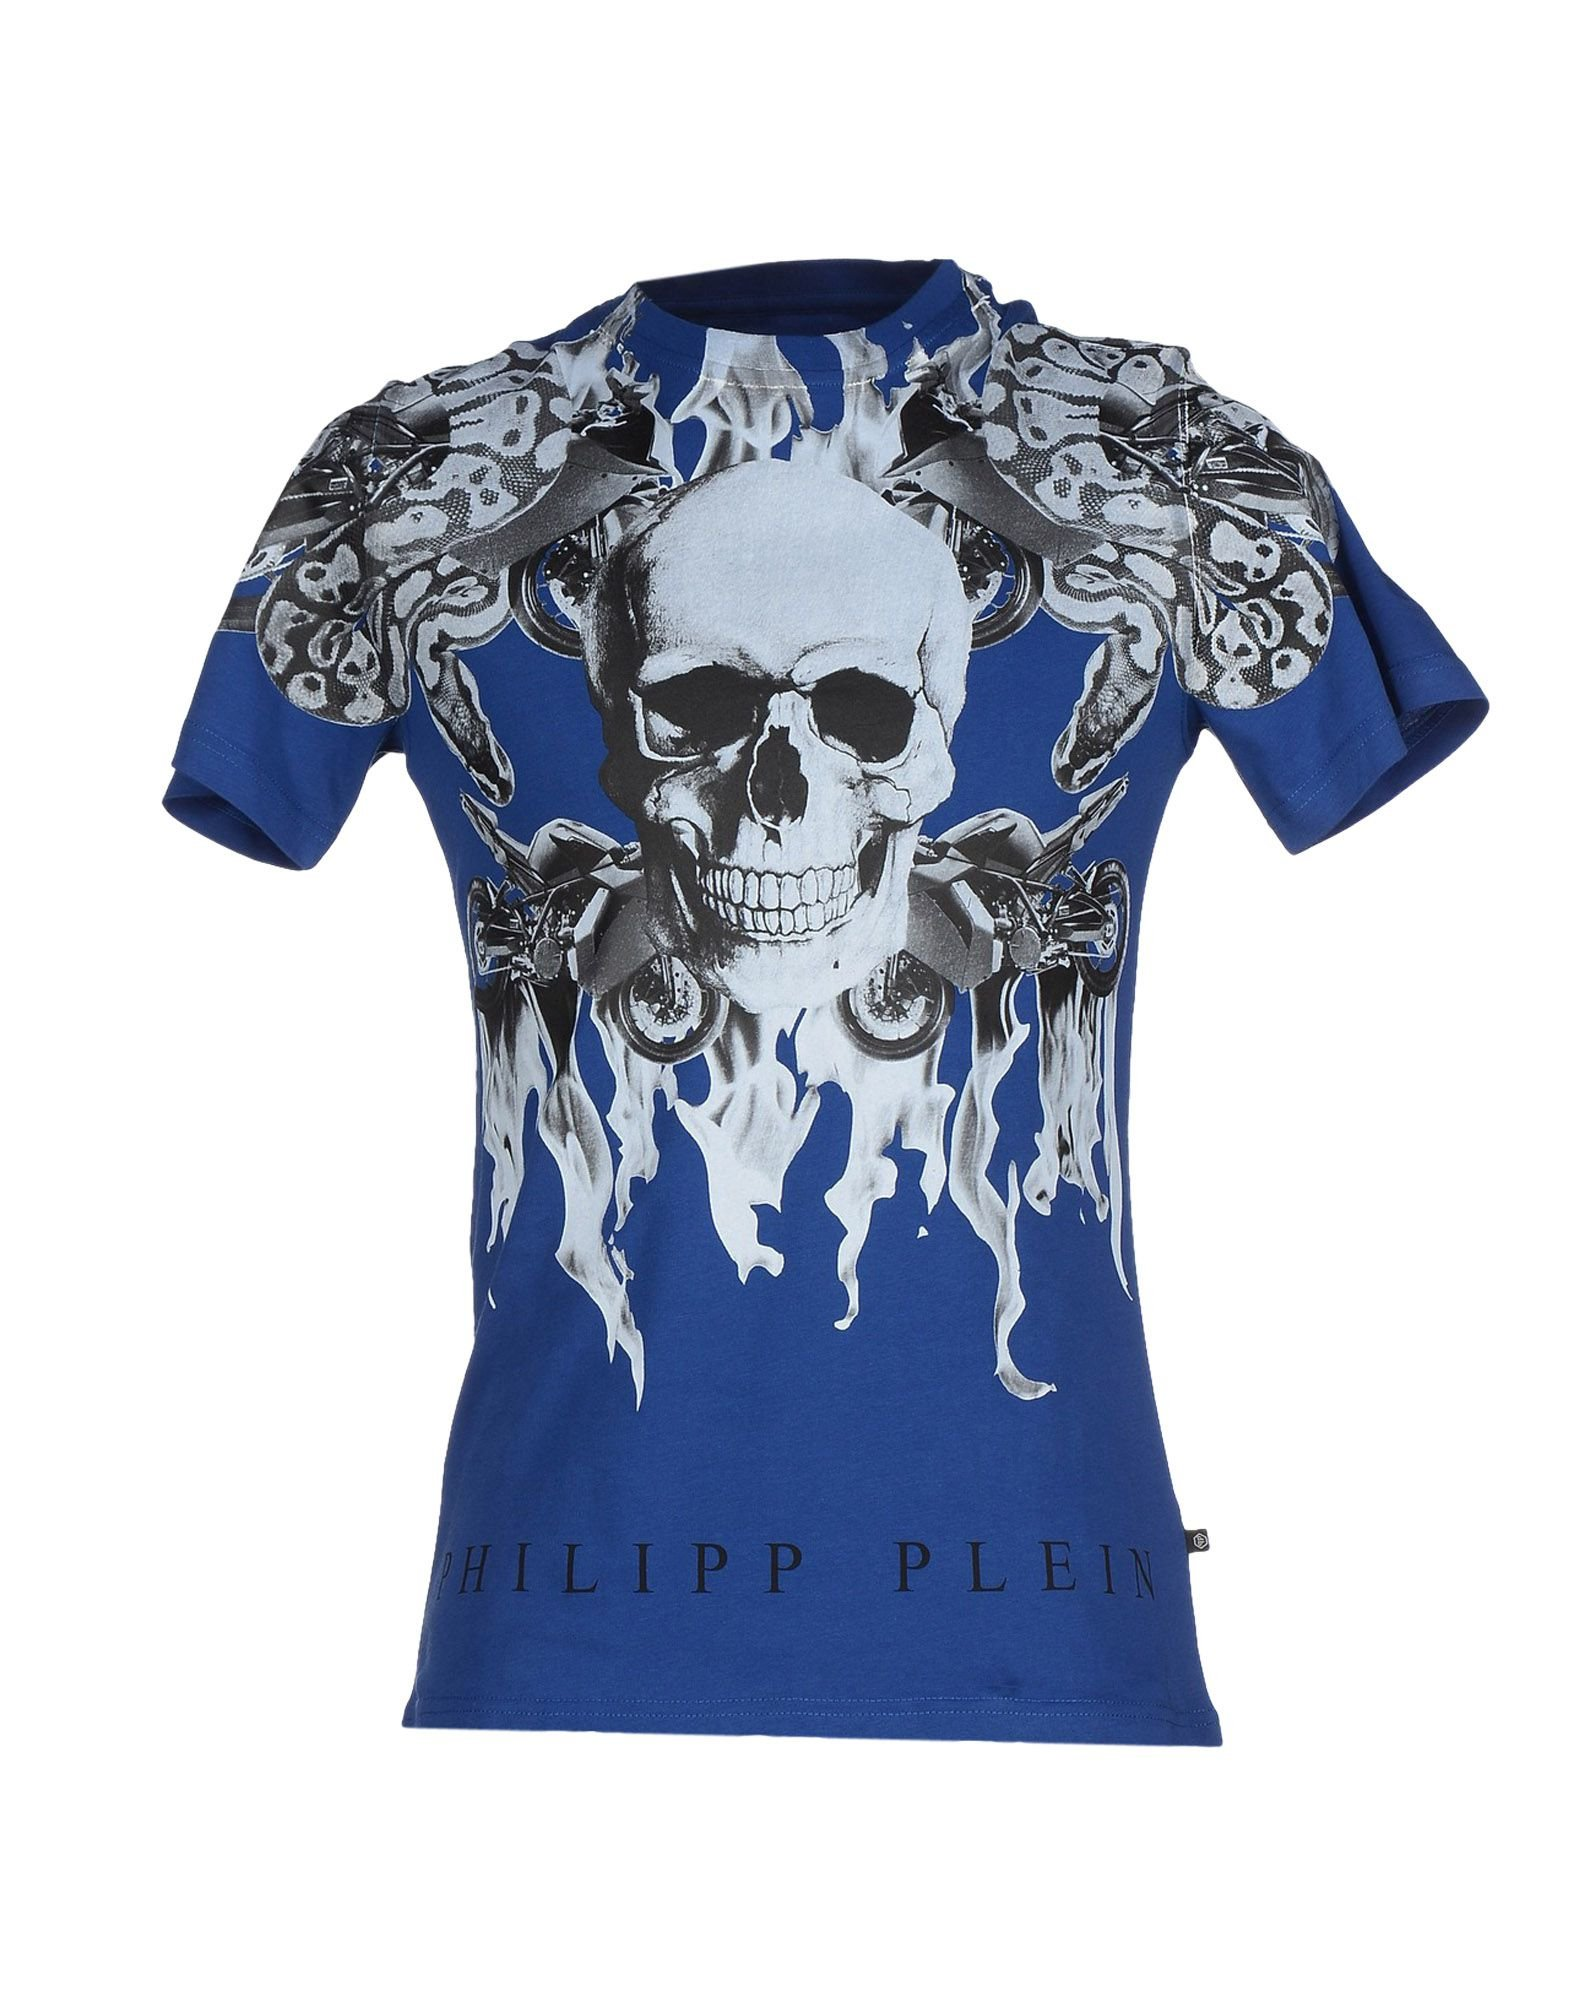 lyst philipp plein t shirt in blue for men. Black Bedroom Furniture Sets. Home Design Ideas